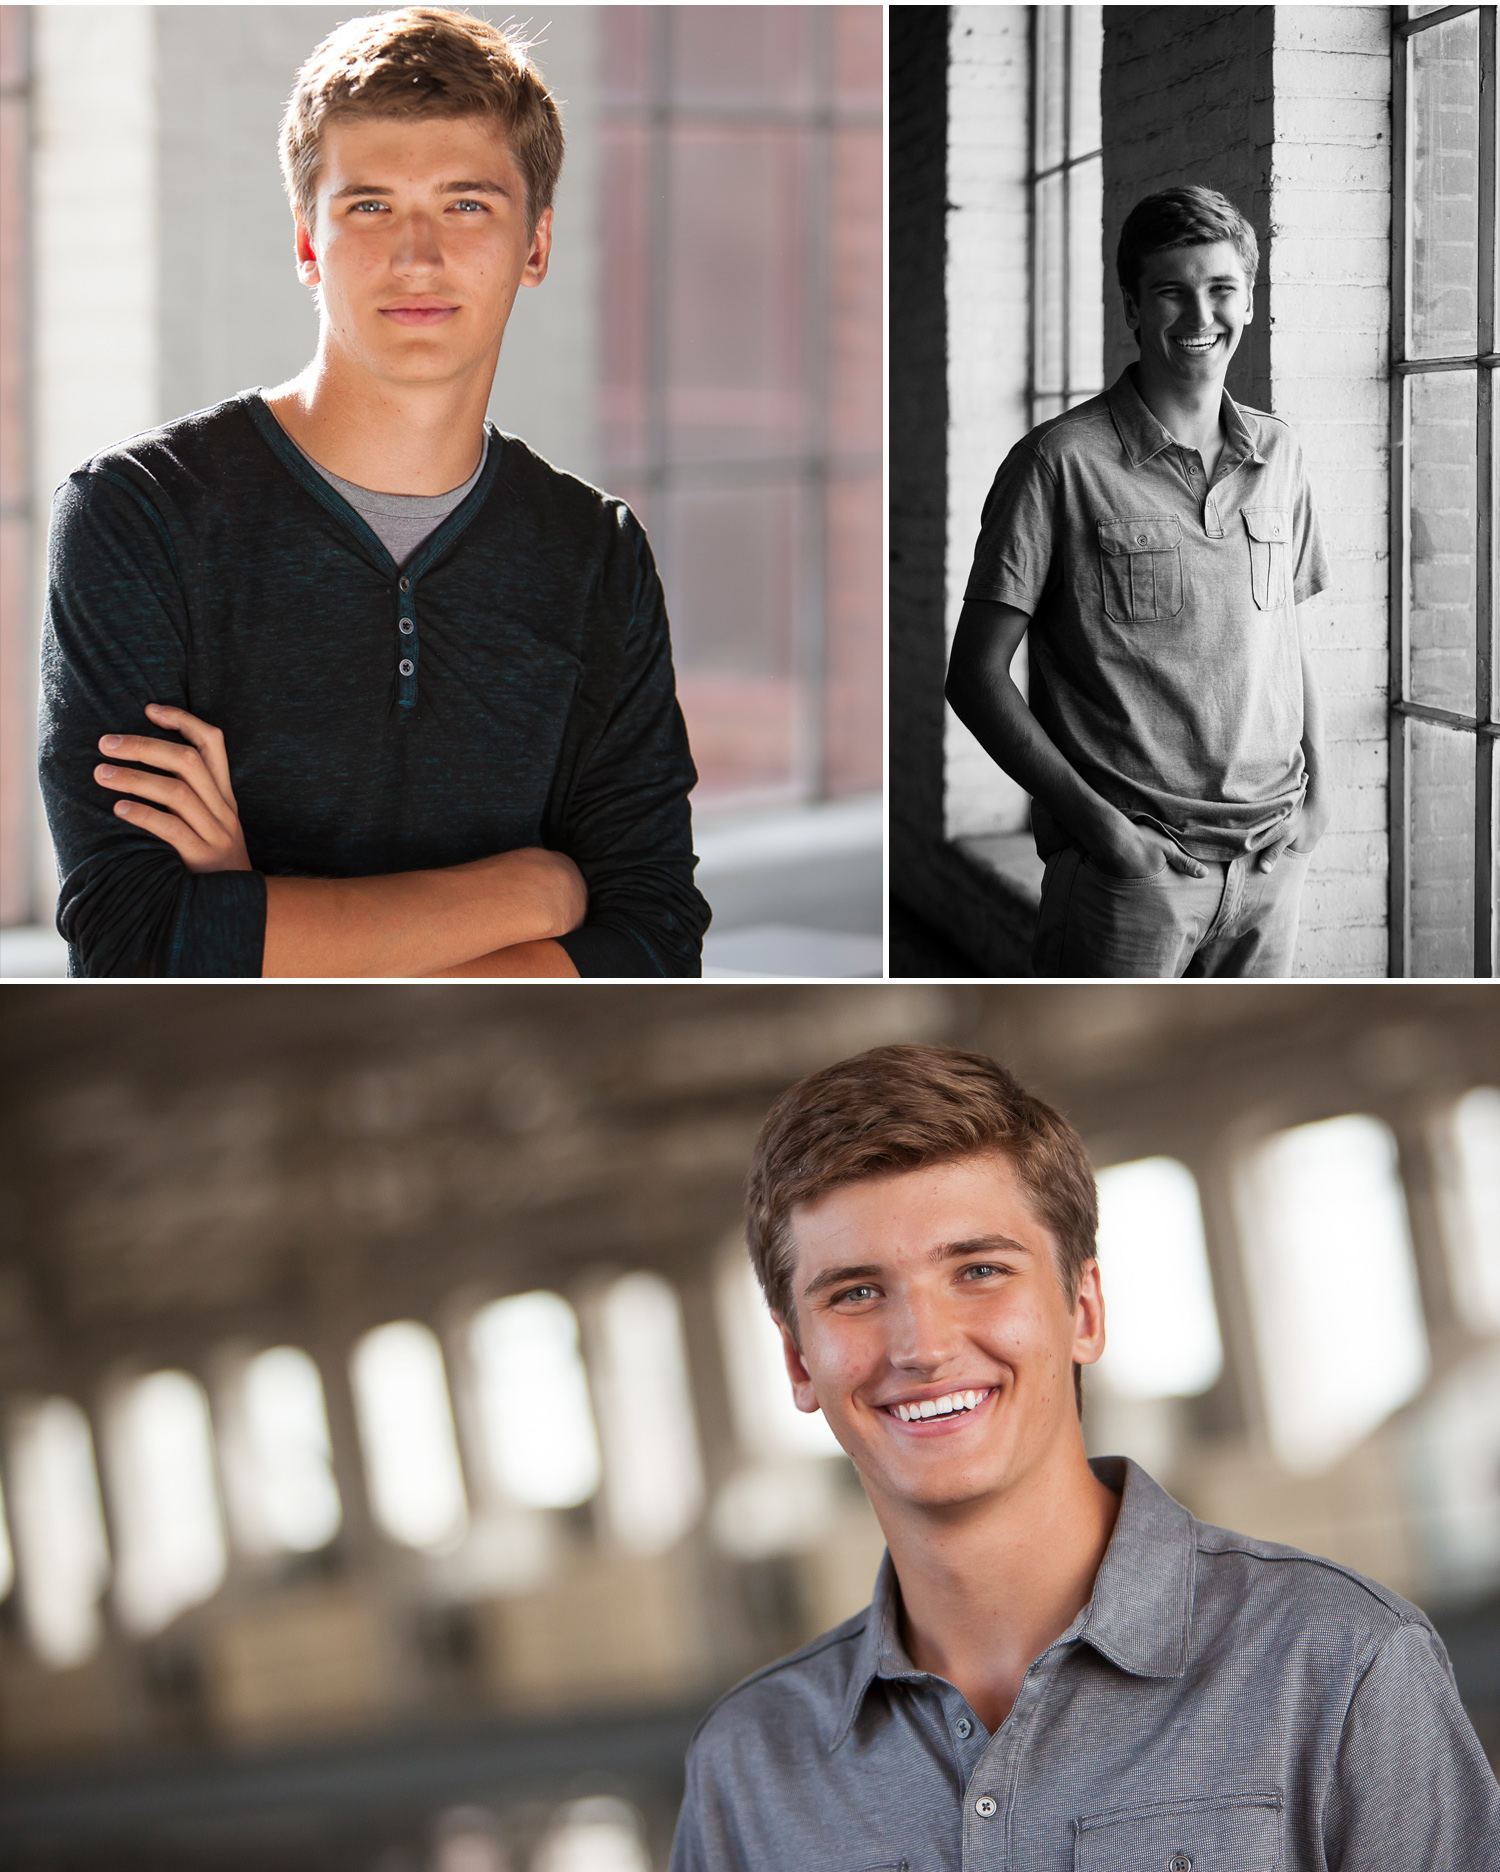 High school senior guy pictures in Denver with photographer Jennifer Koskinen | Merritt Portrait Studio.